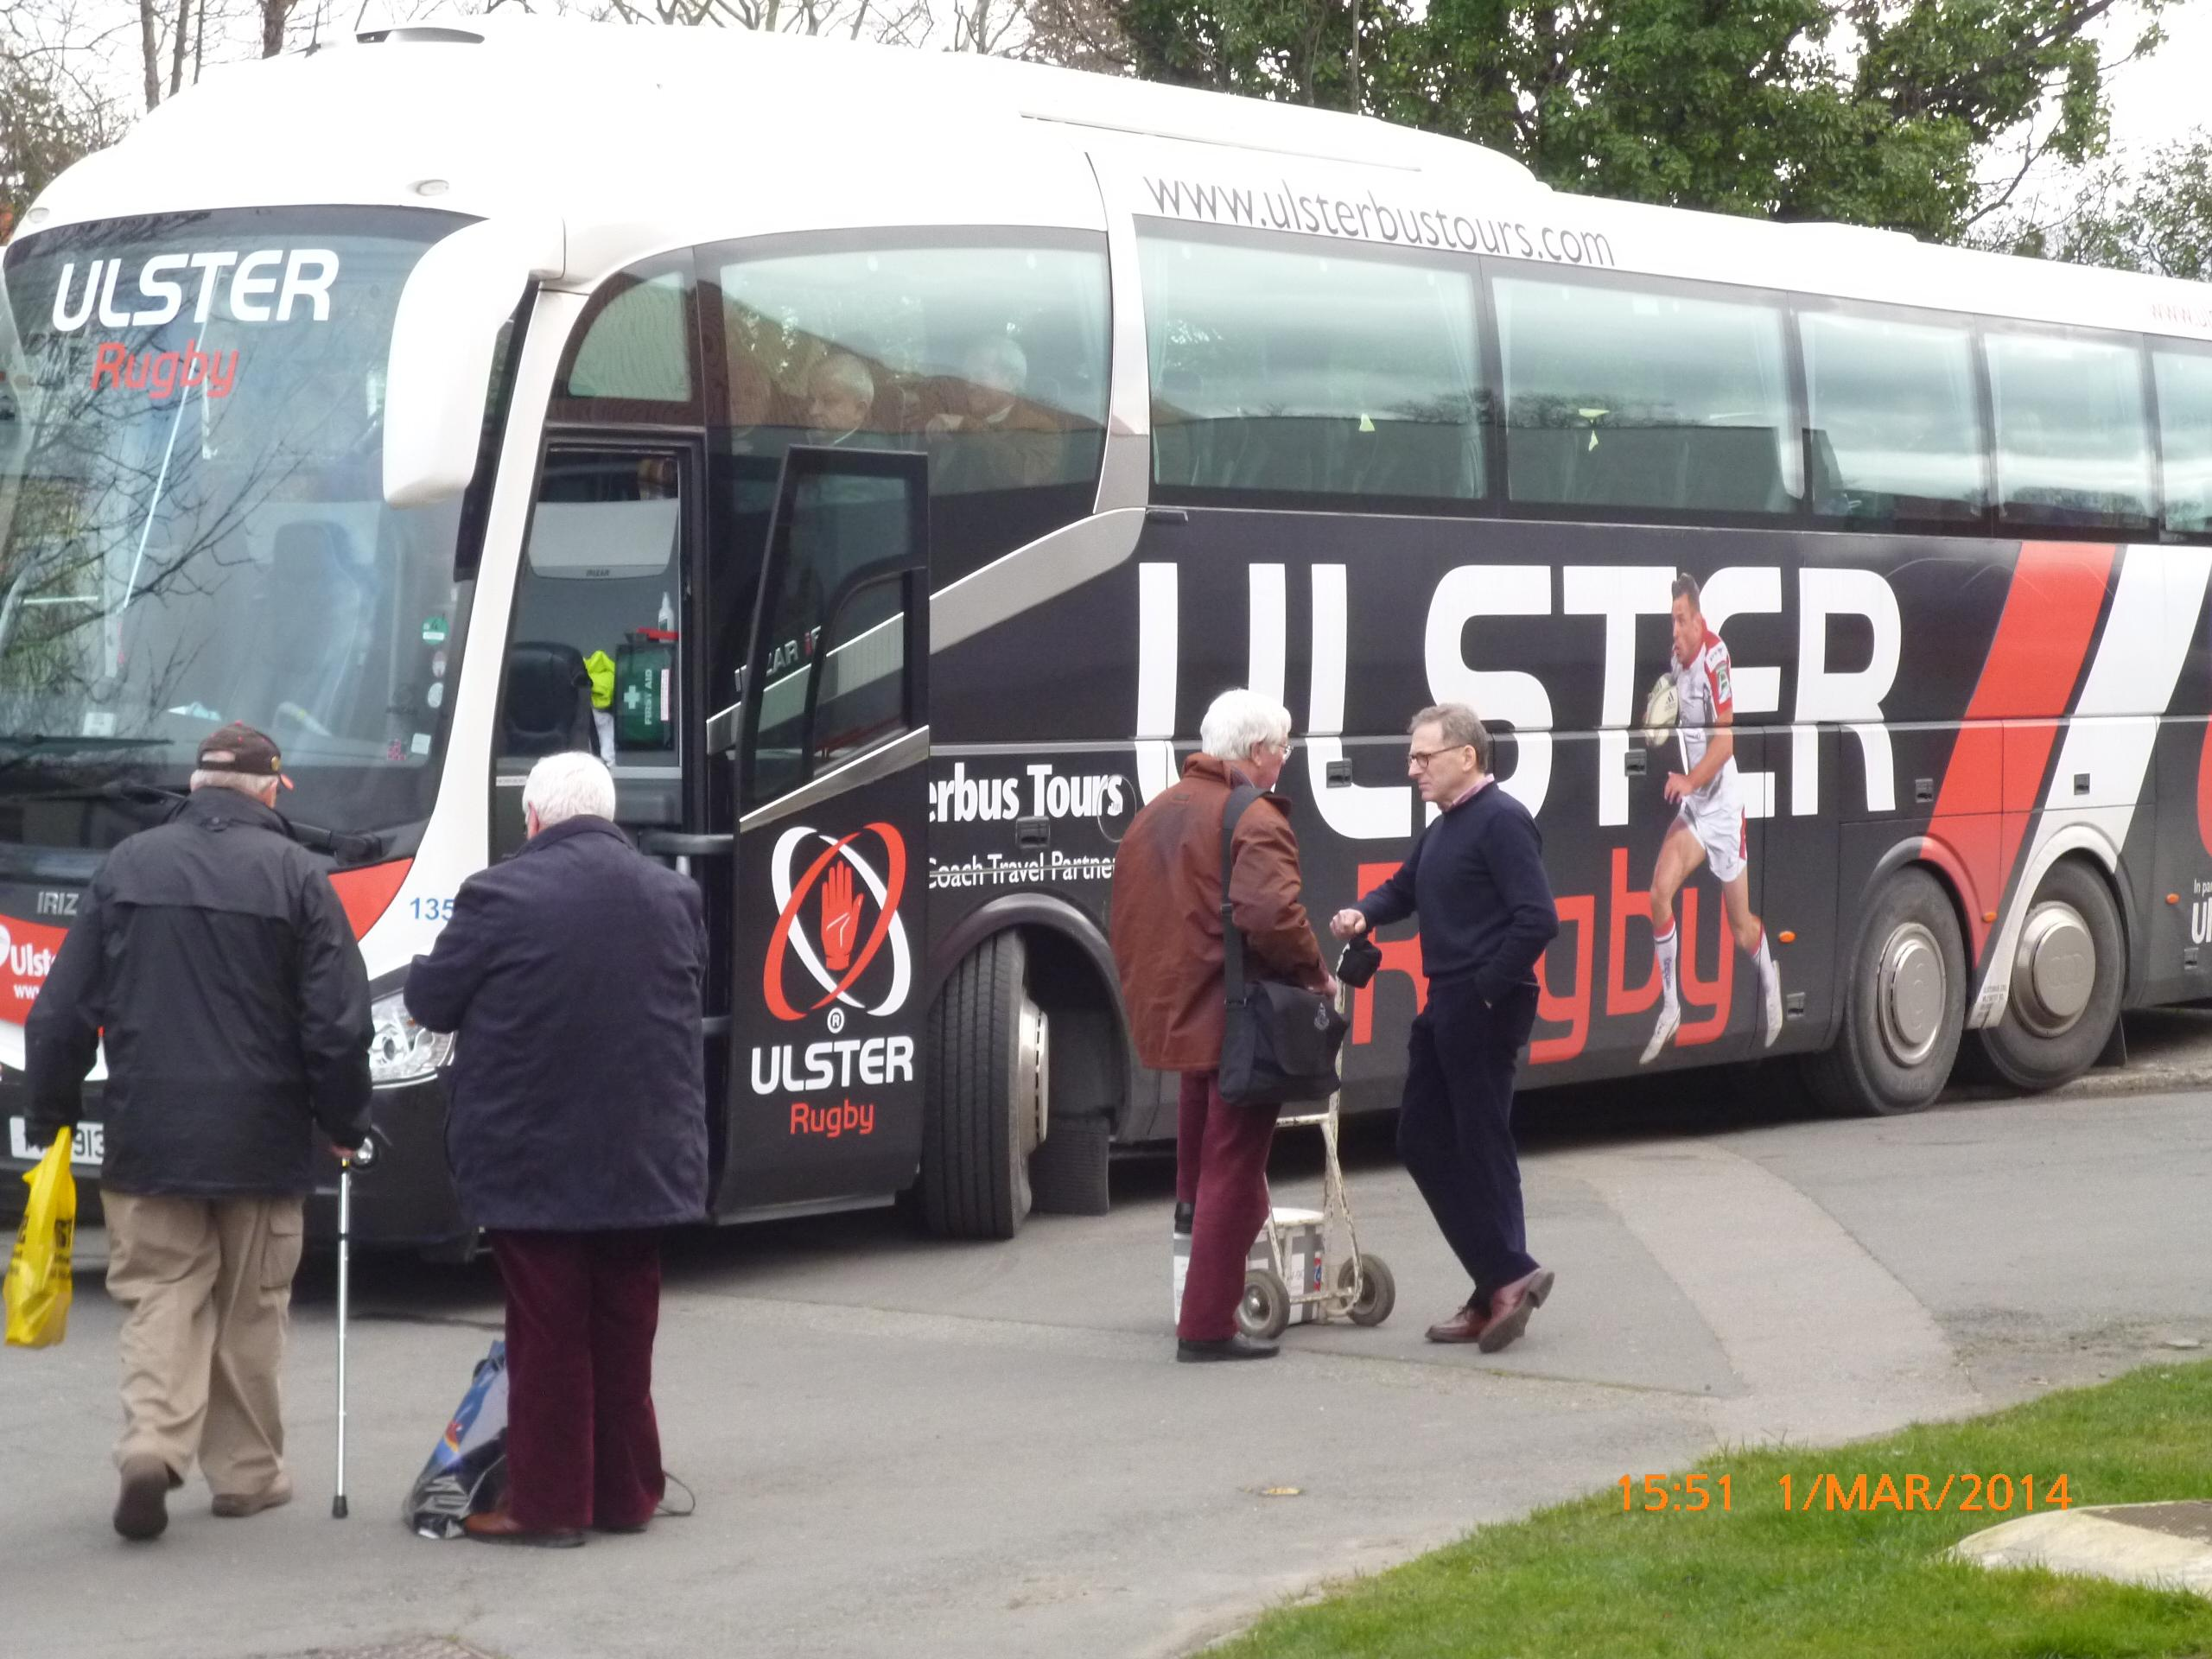 MG Members coach in Ulster Rugby coach AR